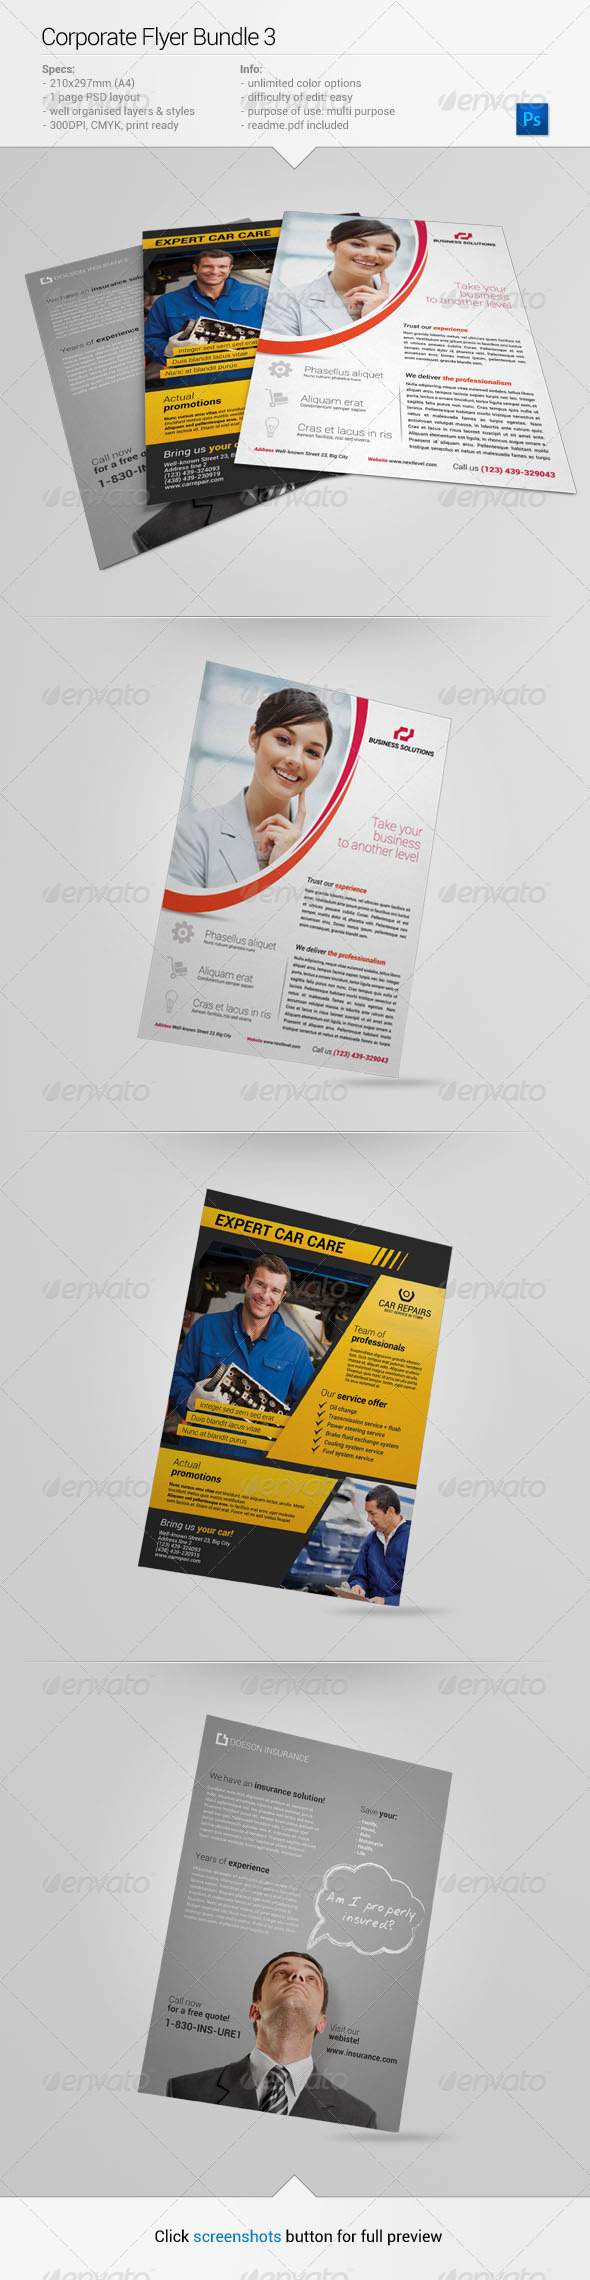 Corporate Flyer Bundle 3 - Corporate Flyers